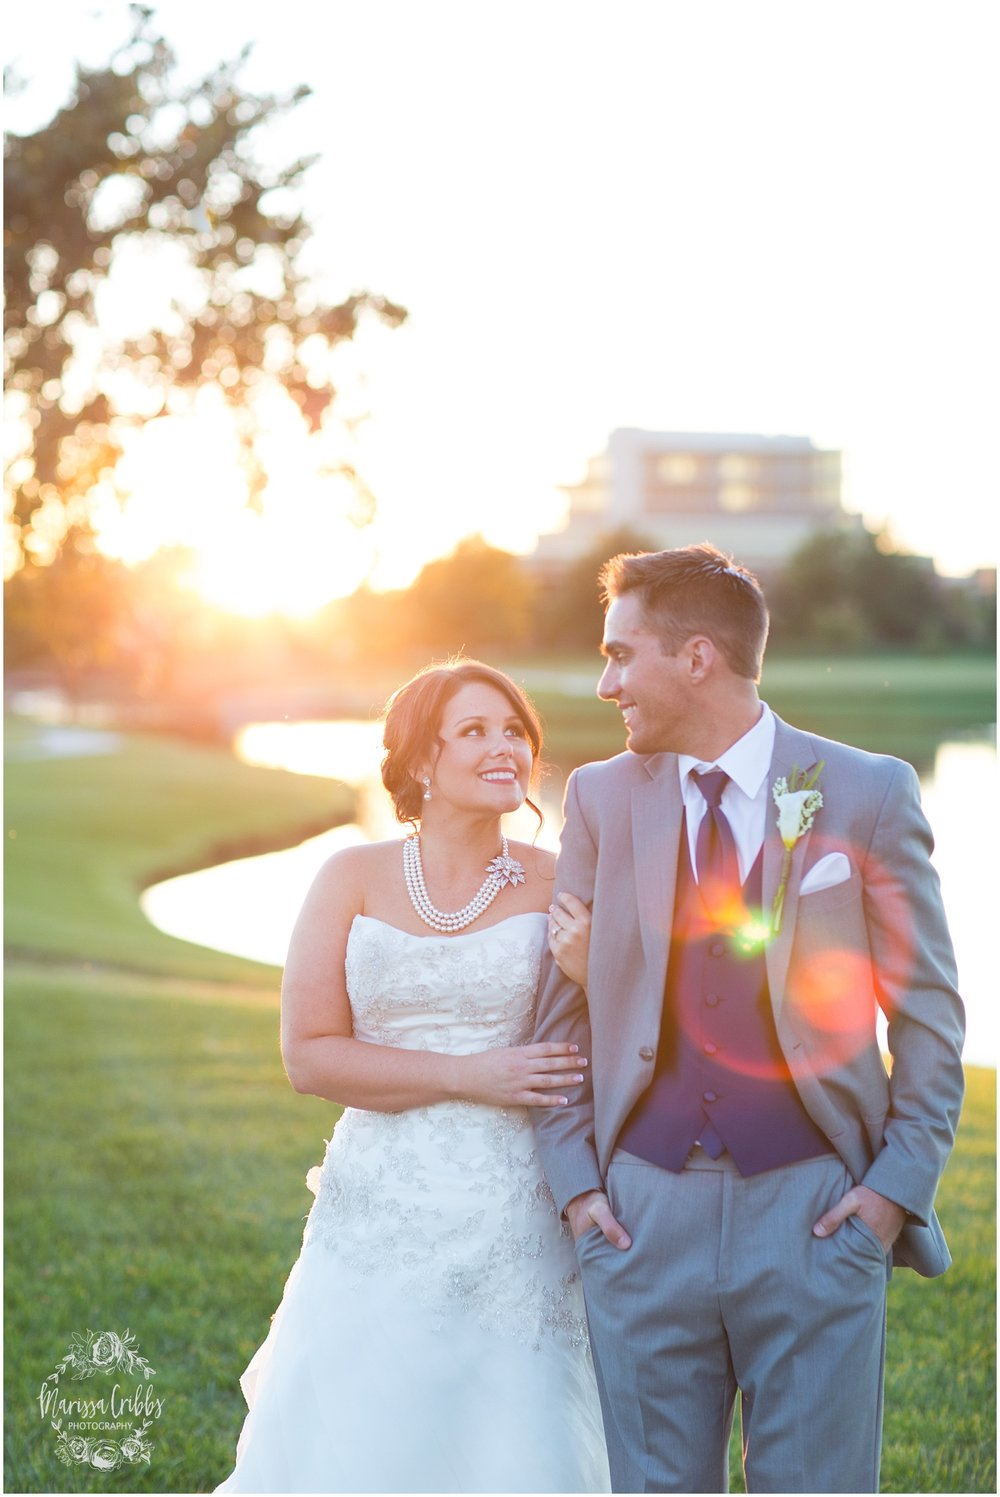 Sarah & Troy | Wichita KS Wedding Photography | Noah's Event Venue Wichita | Marissa Cribbs Photography_1043.jpg